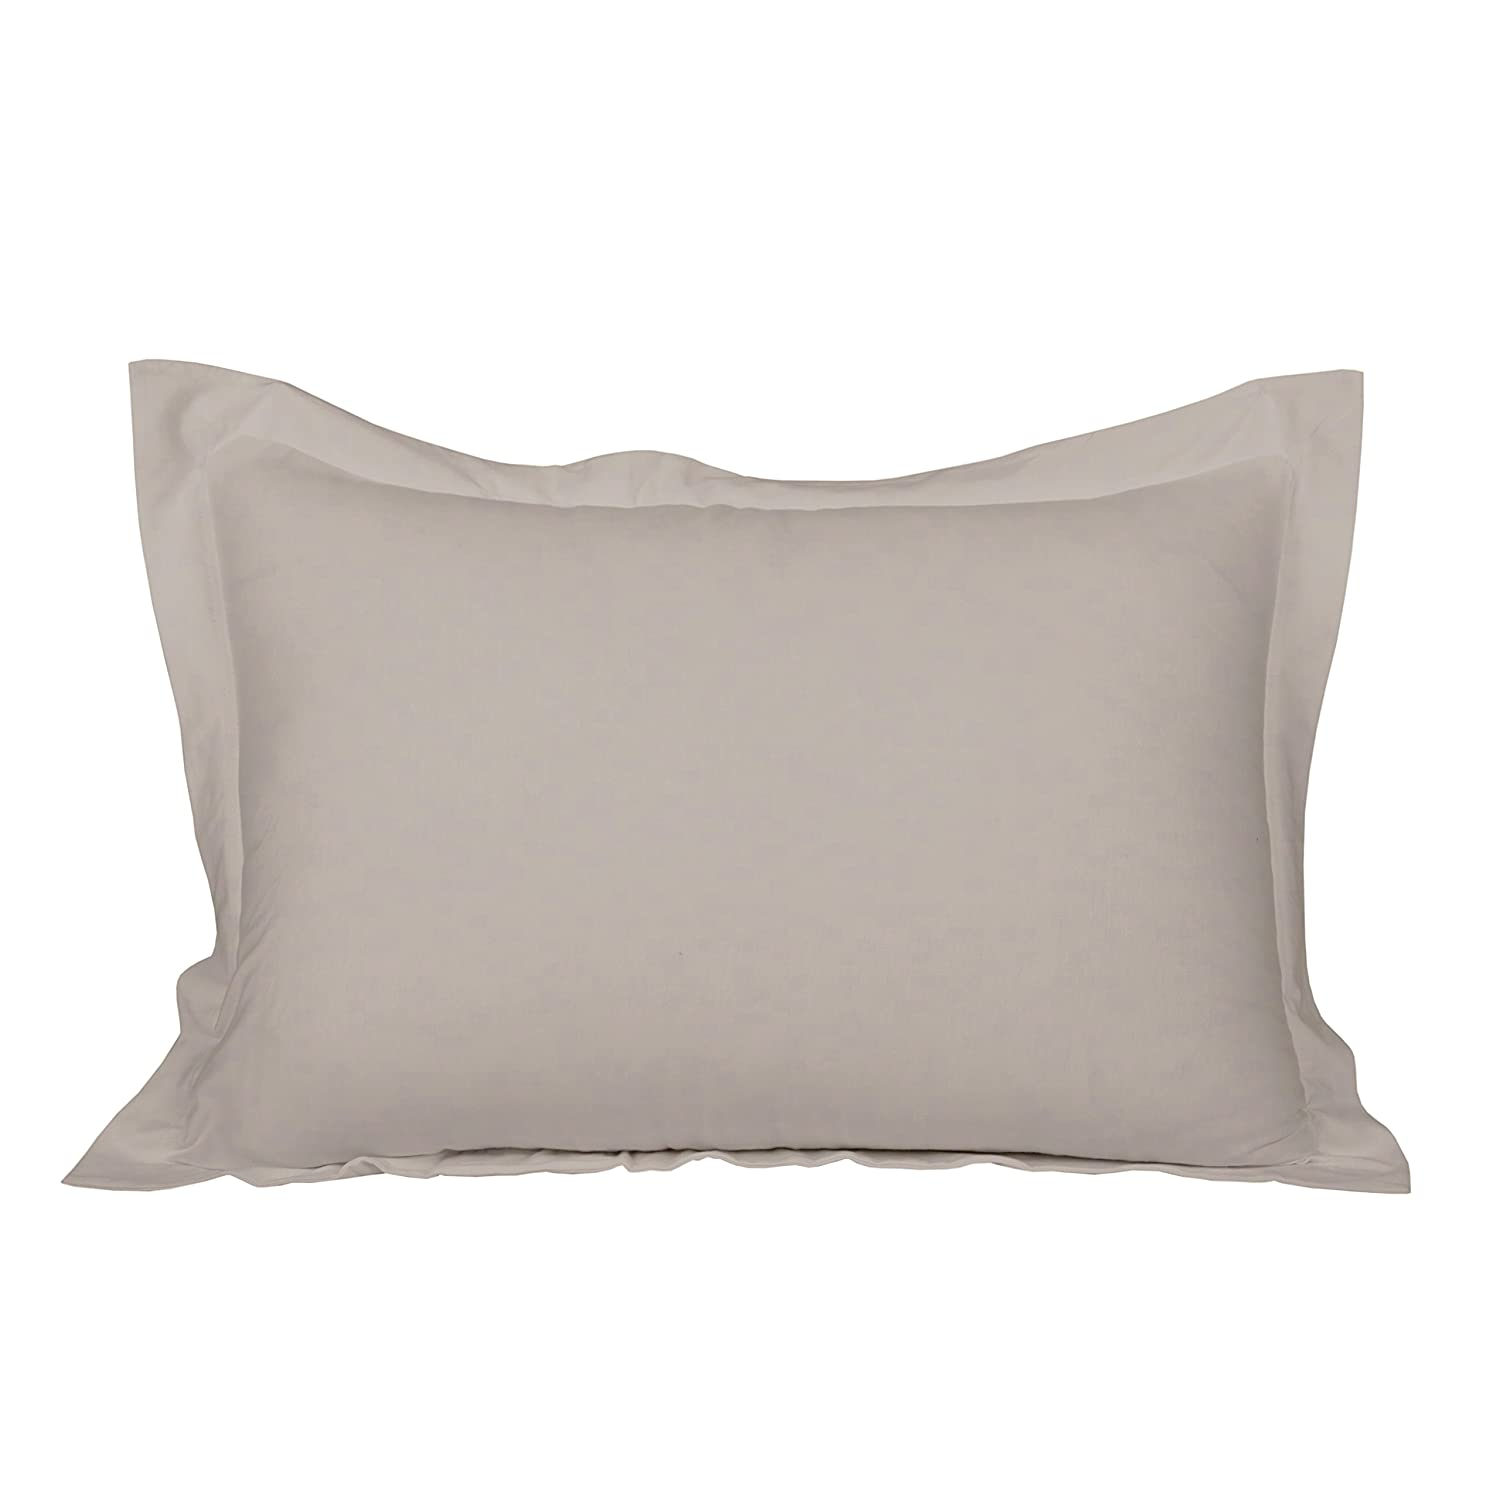 Beige 20 x 30 Half Price Drapes CJR-BGEPC-ST 100/% Cotton Knitted Jersey Pillow Cases